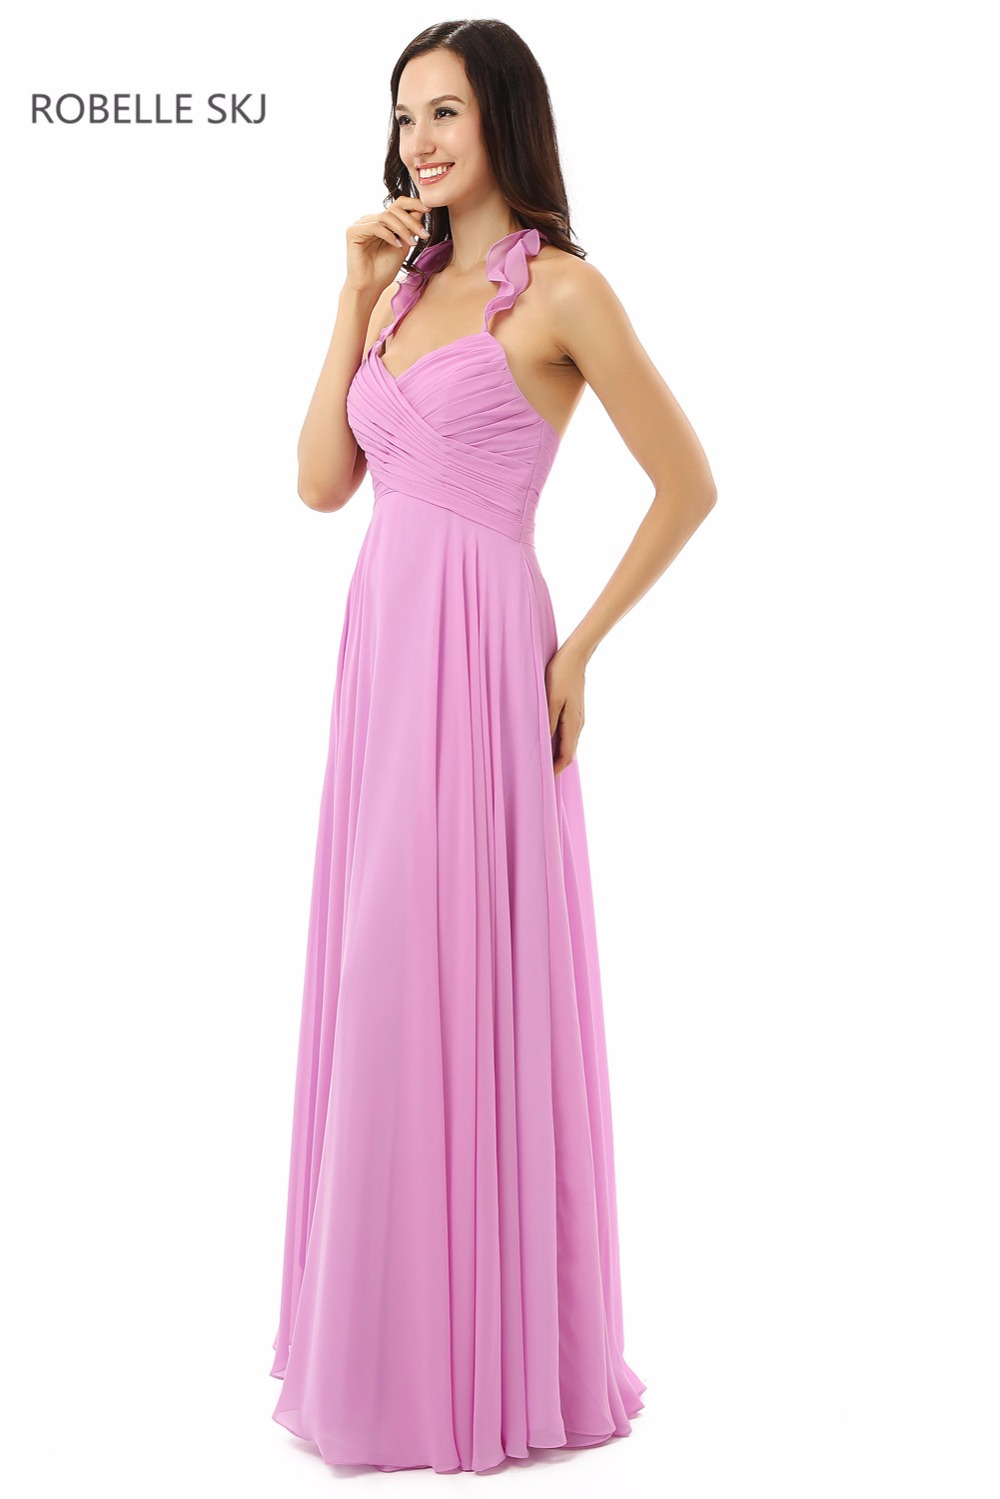 Navy blue and pink bridesmaid dresses image collections littlewoods bridesmaid dresses uk choice image braidsmaid dress navy blue and pink bridesmaid dresses images braidsmaid ombrellifo Image collections